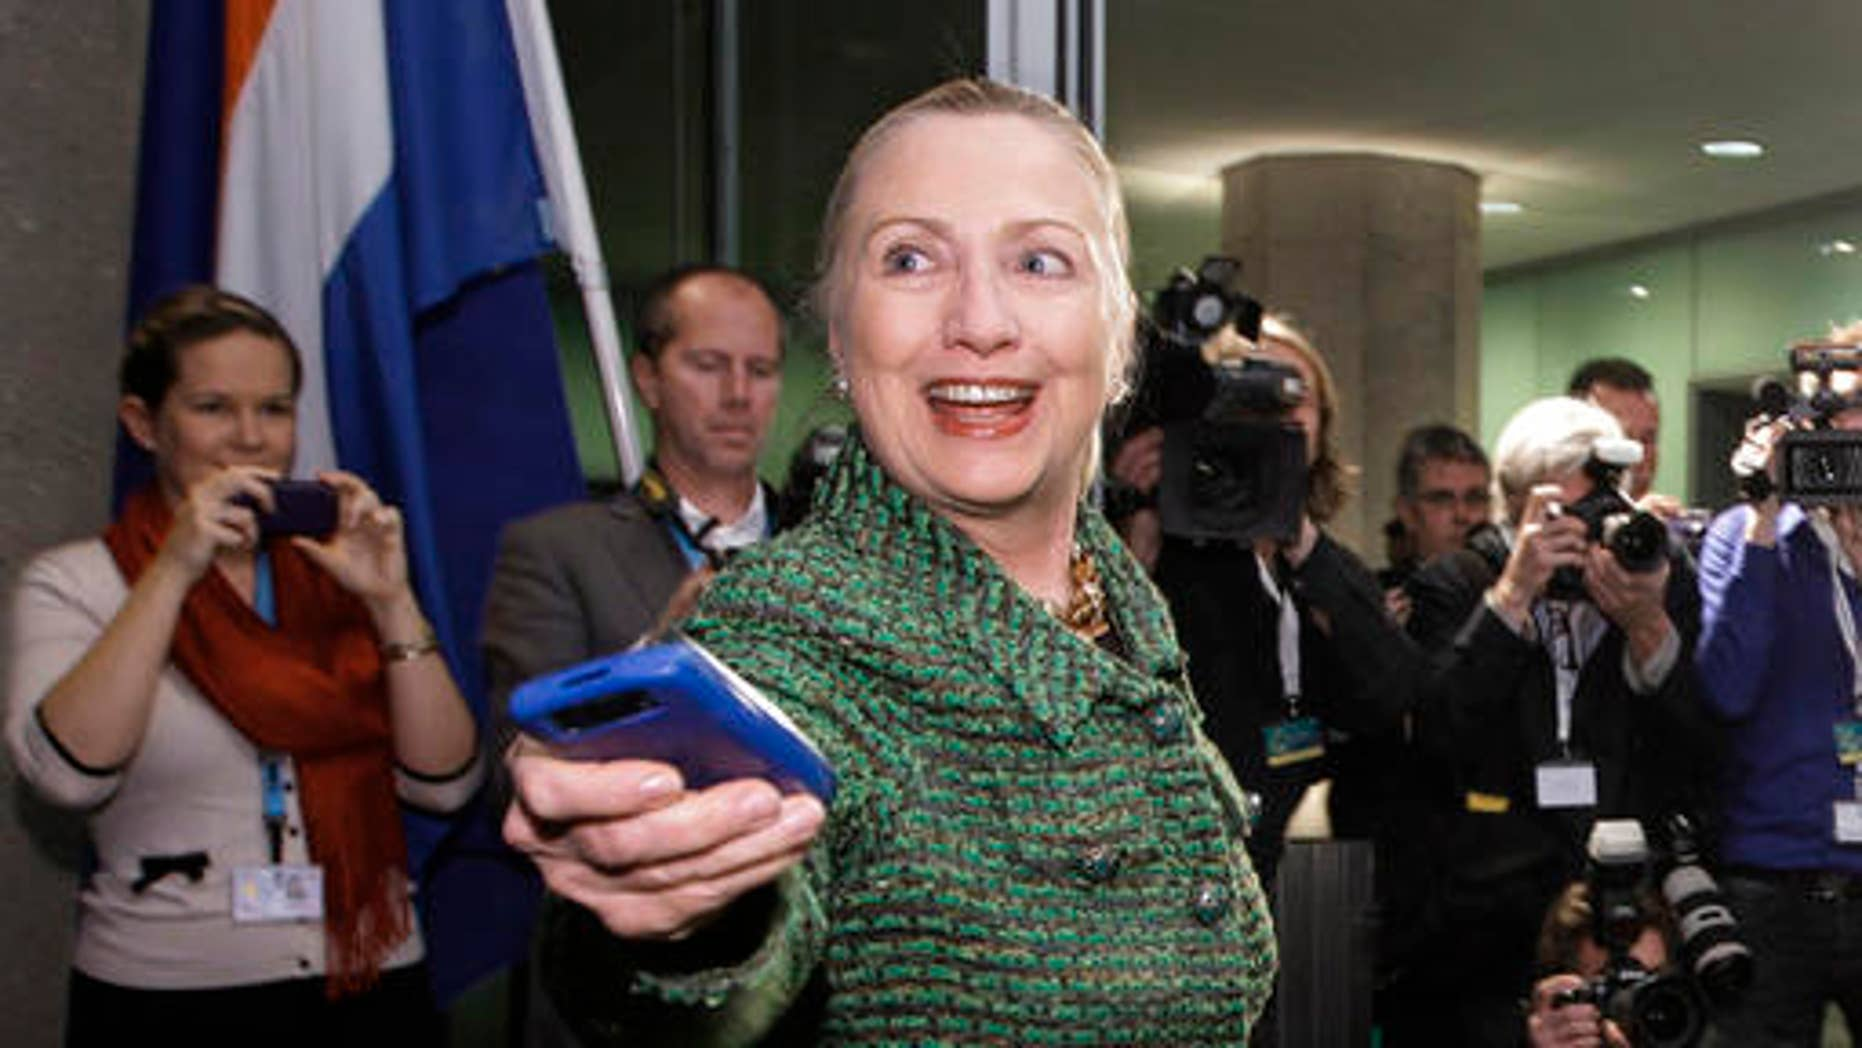 FILE - Dec. 8, 2011: Then-Secretary of State Hillary Rodham Clinton hands off her mobile phone after arriving for a meeting in The Hague, Netherlands.